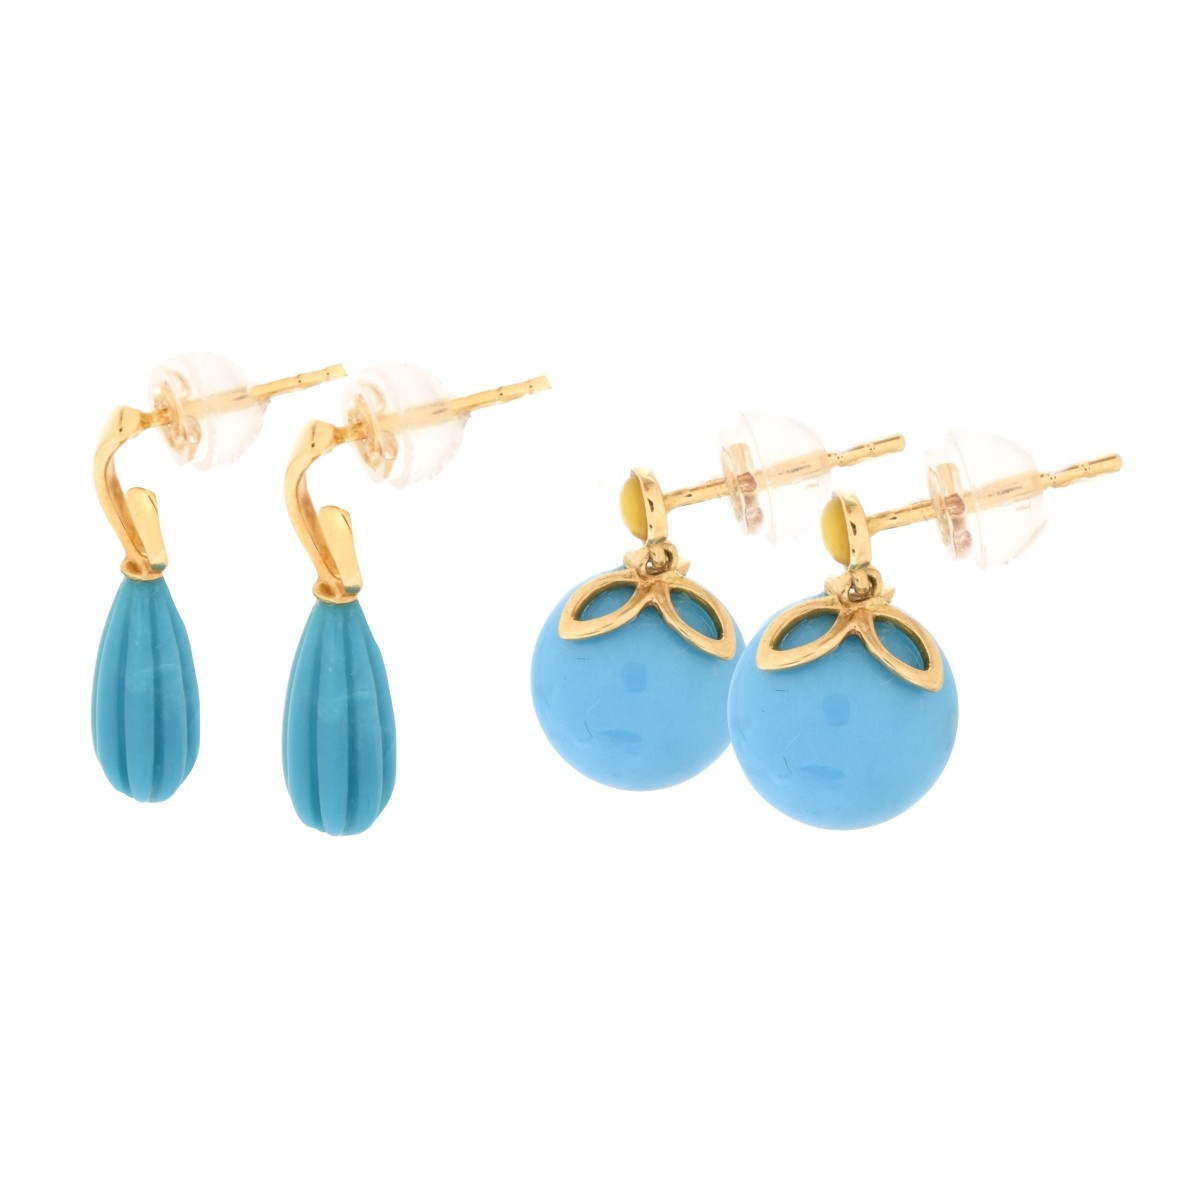 Two Pair Turquoise 18K Gold Earrings